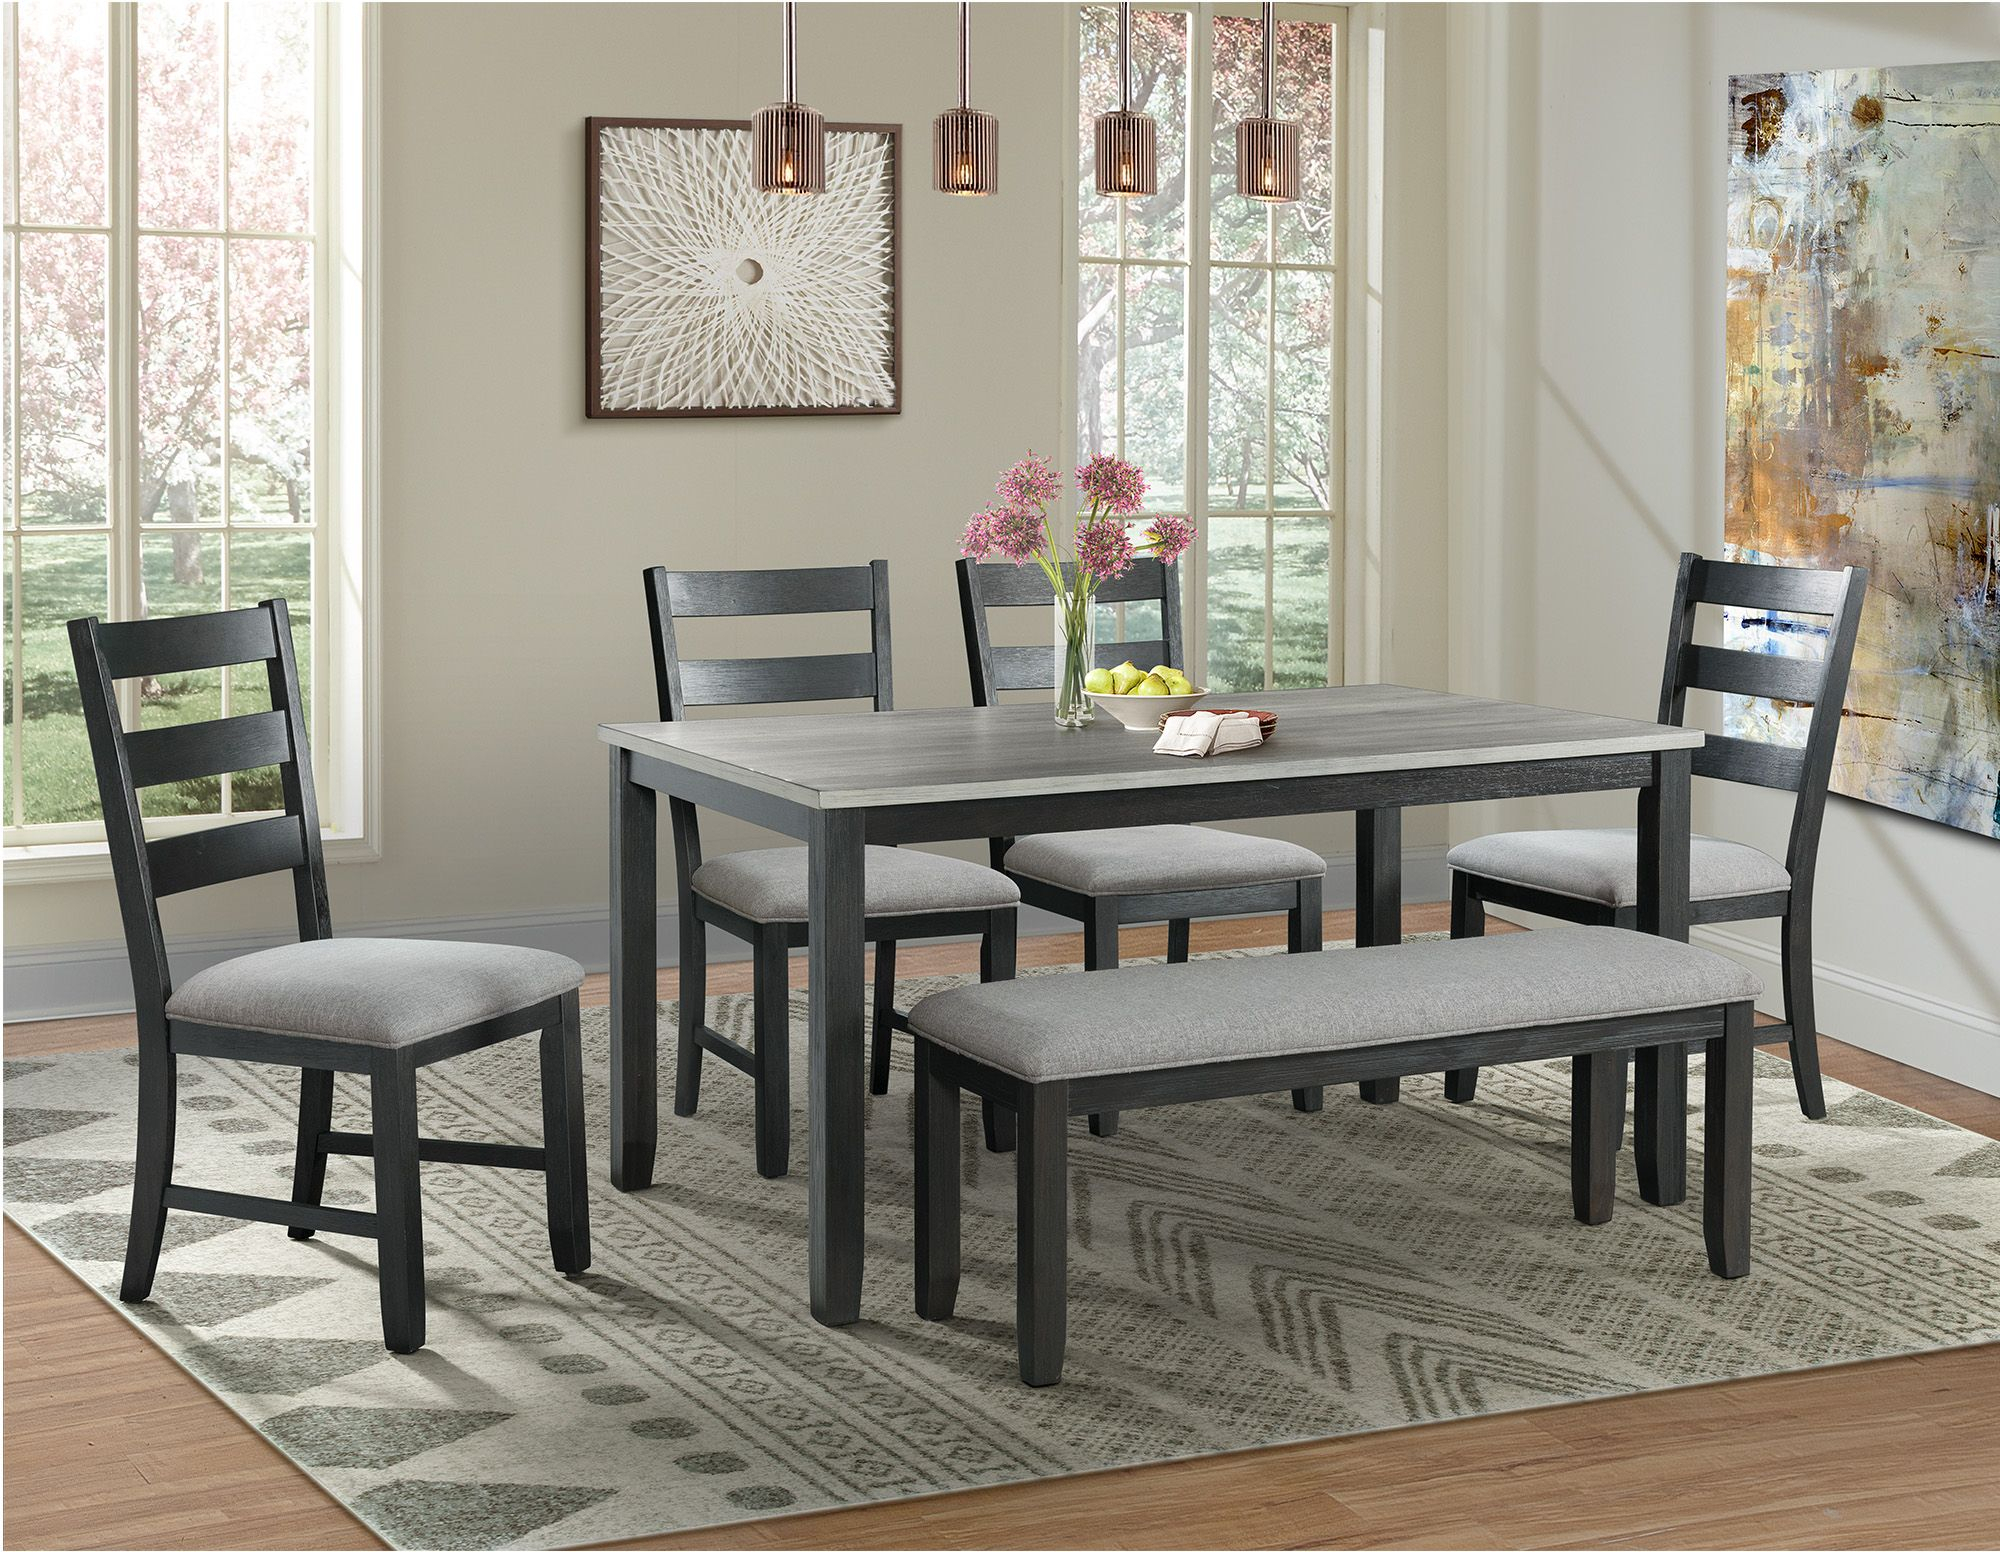 Inspiration about Trendy Kinsler 3 Piece Bistro Sets Within Kona Gray And Black 6 Piece Dining Room Set From Elements Furniture (#19 of 20)